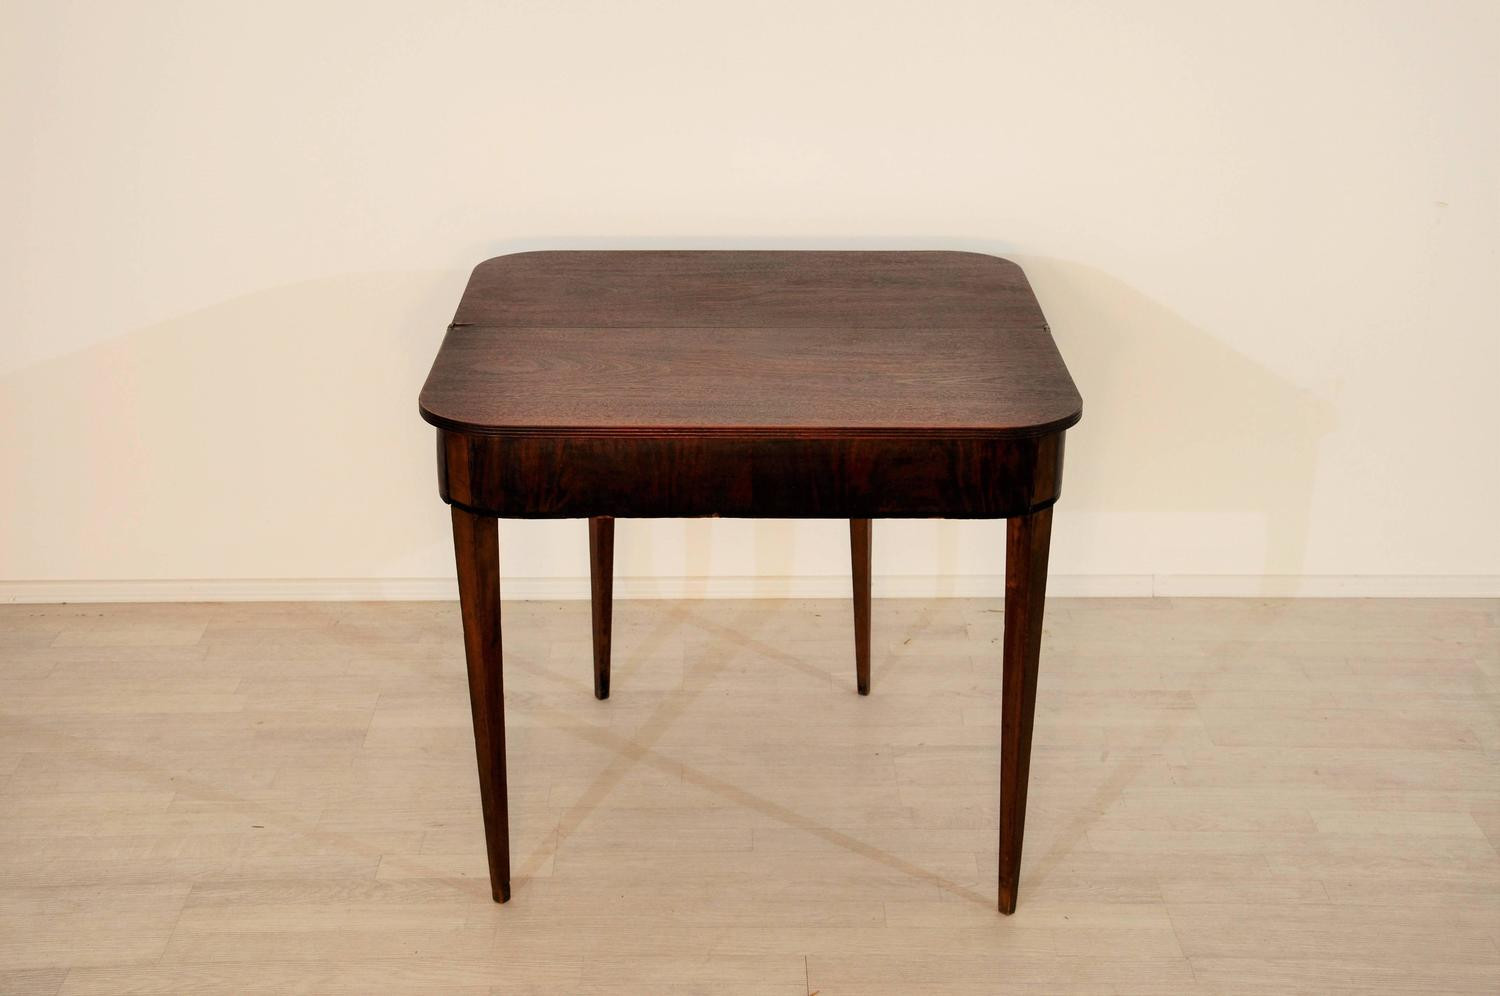 Hinged Art Deco Game Table and Console at 1stdibs : DSC0092z from www.1stdibs.com size 1500 x 996 jpeg 71kB